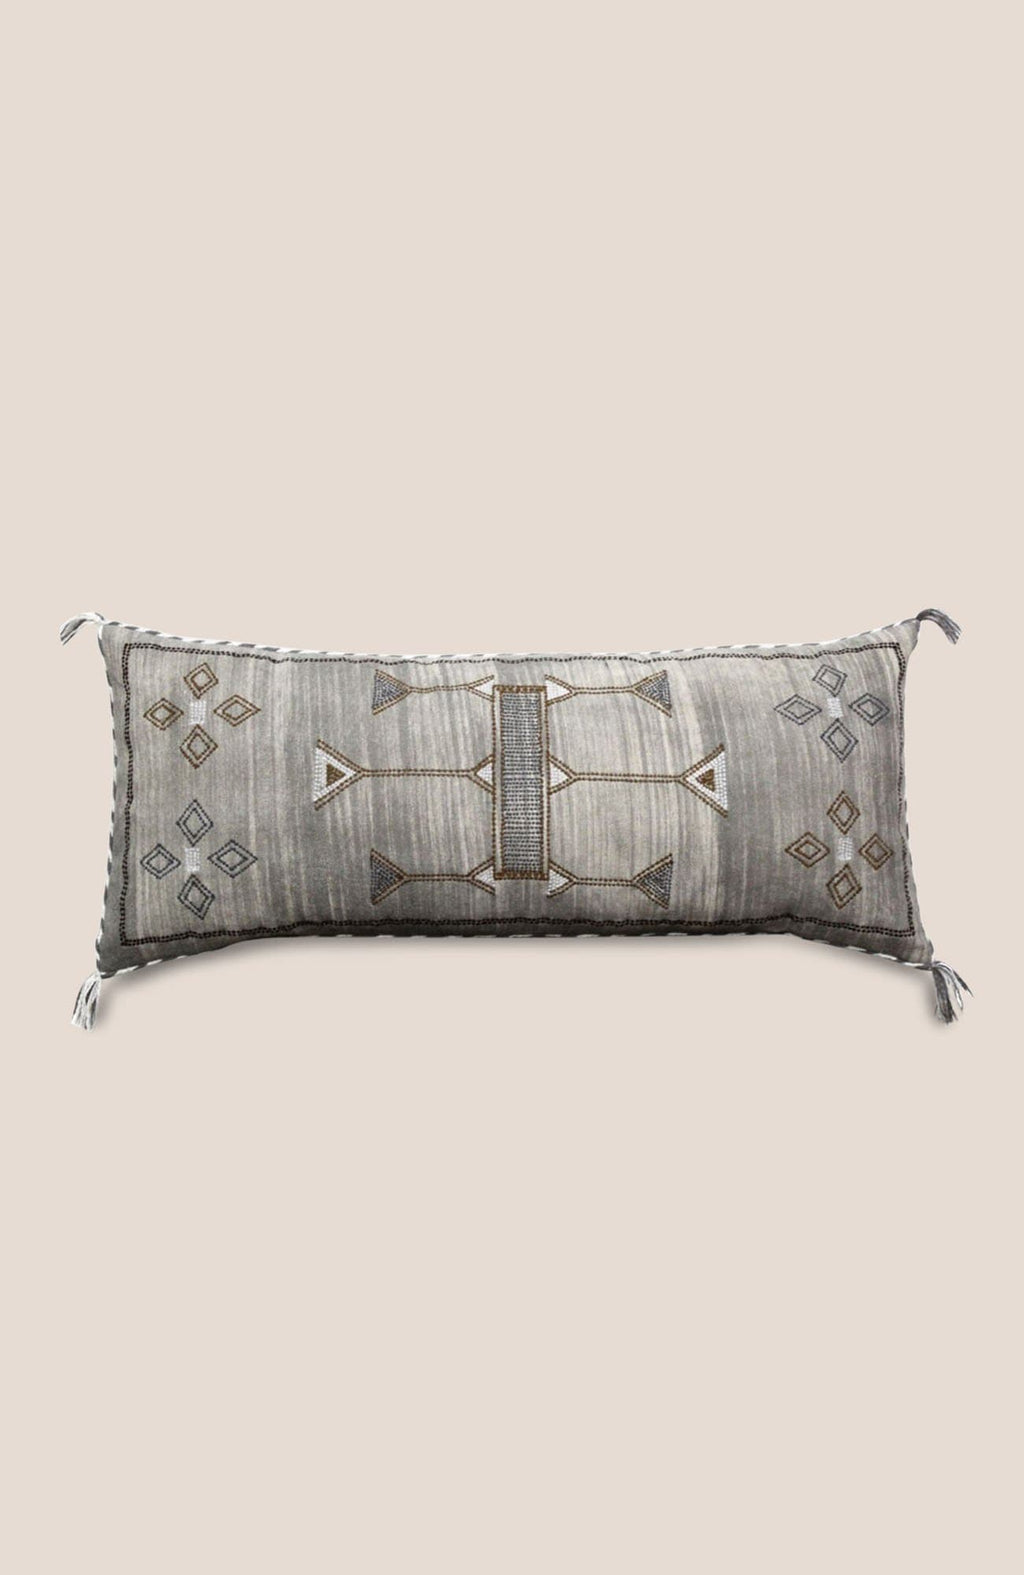 Sabra Pillow Cover Kali - Home Decor | Shop Baskets, Ceramics, Pillows, Rugs & Wall Hangs online